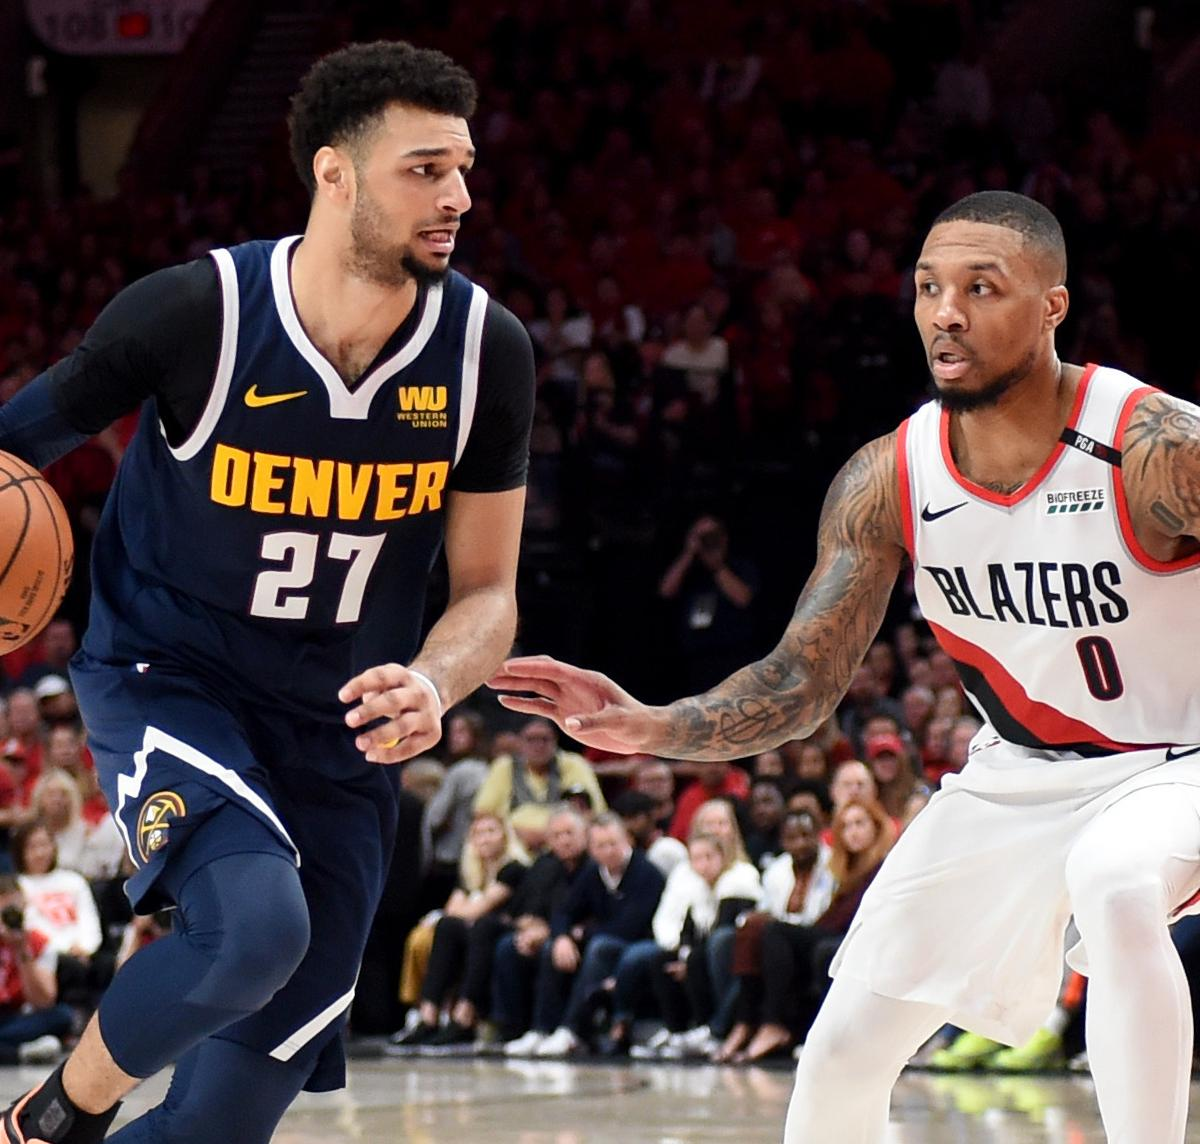 Nuggets Playoff Tickets 2019: NBA Playoffs 2019: Game Times, TV, Live Stream Coverage